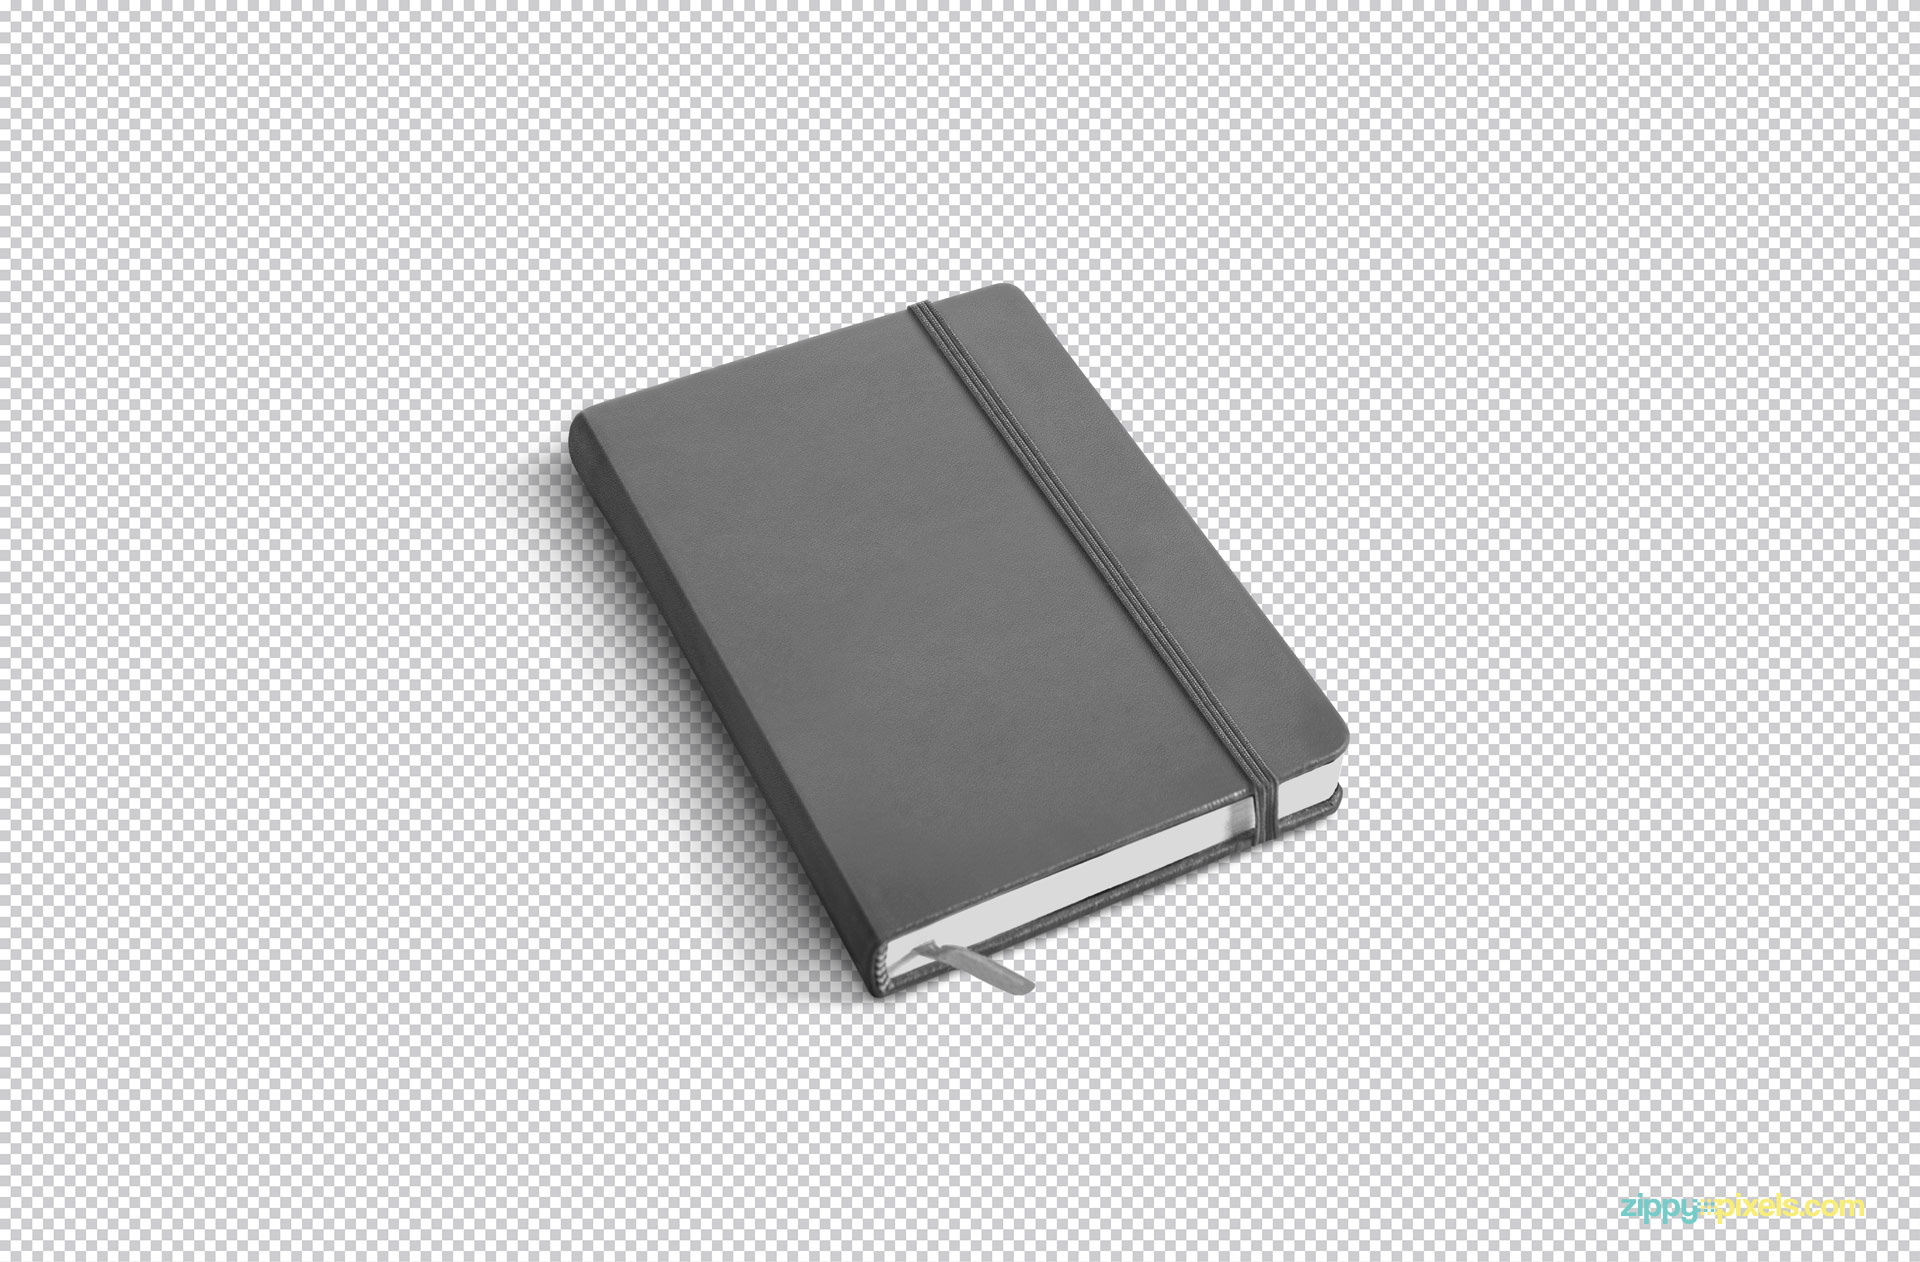 Simply use Adobe Photoshop to edit this free notebook mockup.